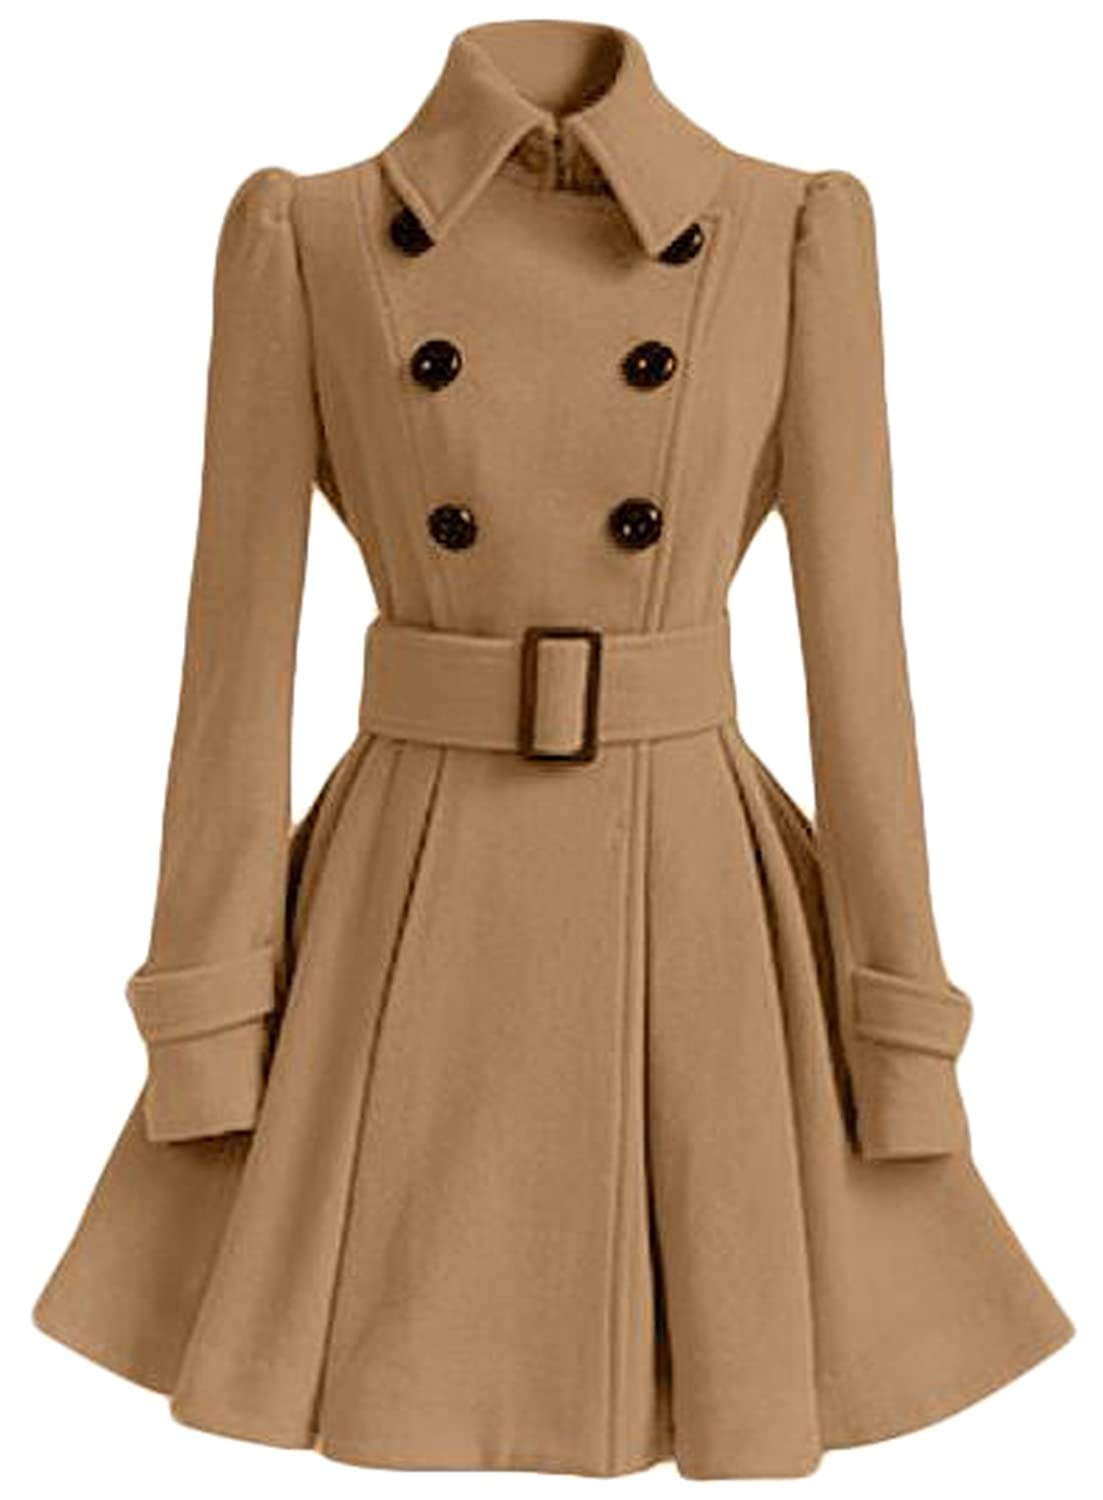 Domple Womens Classic Stand Collar Double-Breasted Woolen Coat With Belt Khaki M